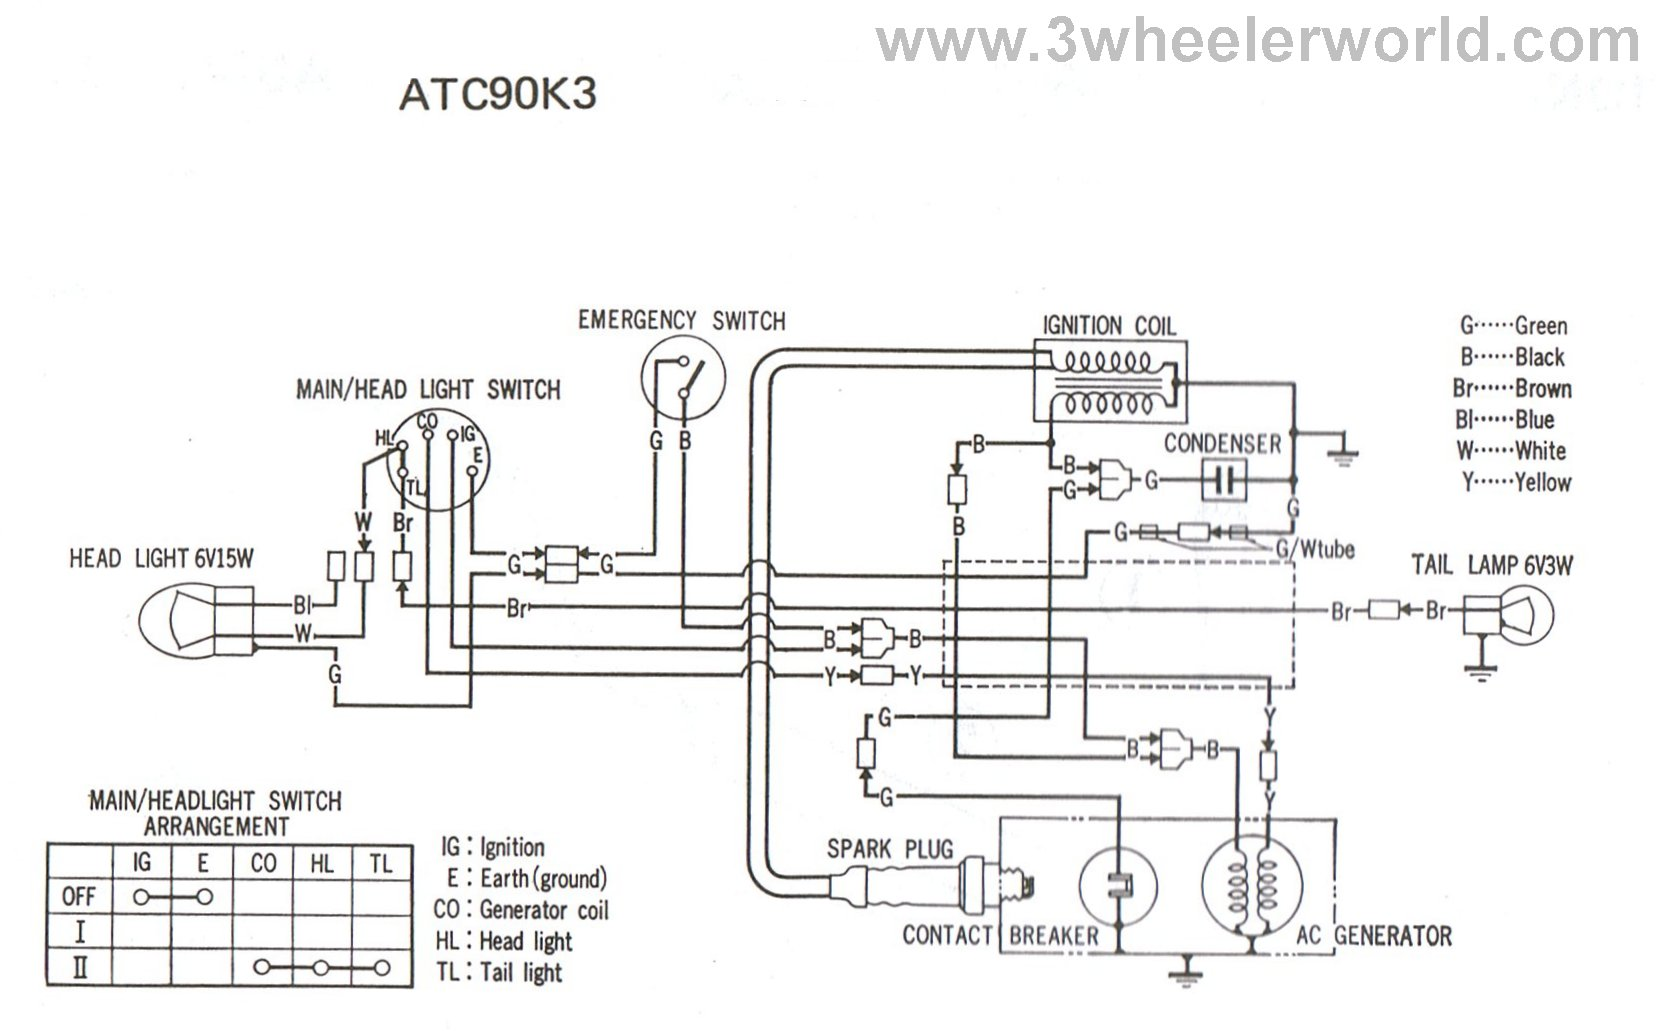 ATC90K3HM wiring diagram polaris xplorer 300 the wiring diagram polaris scrambler 400 wiring diagram at honlapkeszites.co